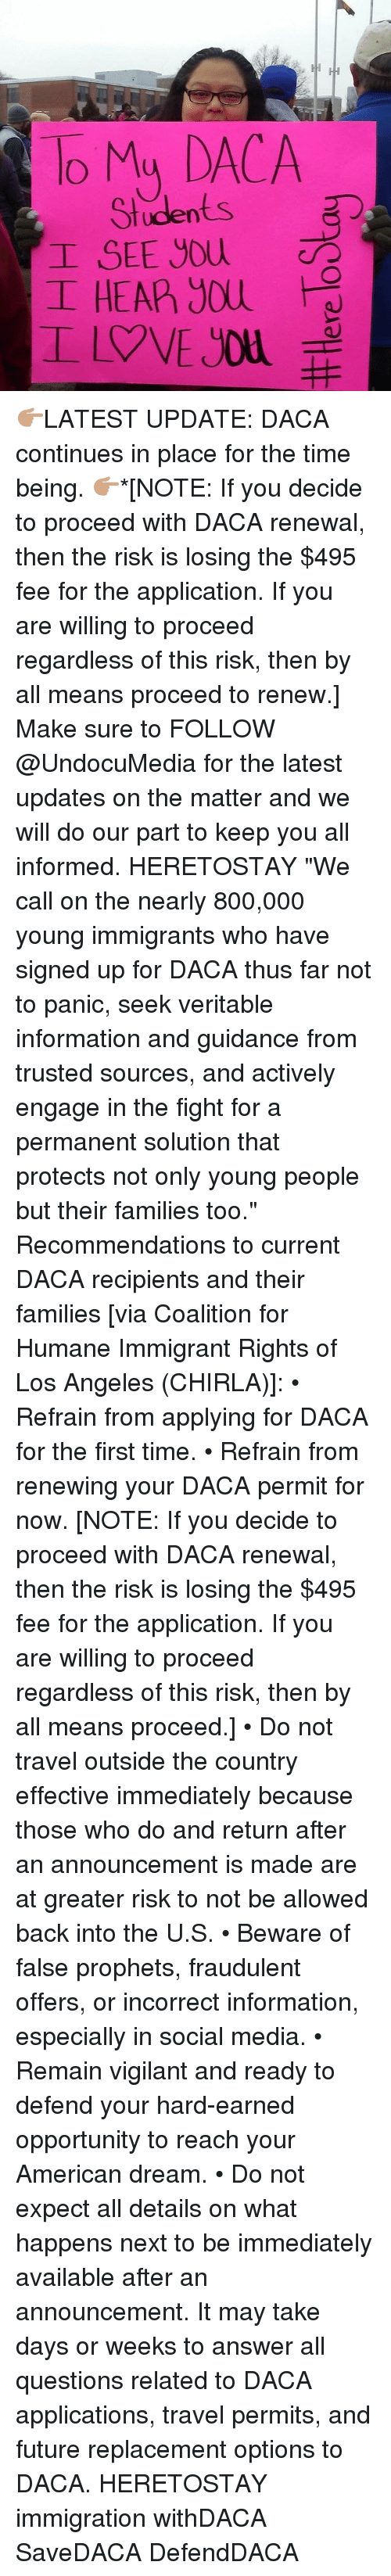 """veritable: To My DACA  Students  I SEE you  I HEAP) you 👉🏽LATEST UPDATE: DACA continues in place for the time being. 👉🏽*[NOTE: If you decide to proceed with DACA renewal, then the risk is losing the $495 fee for the application. If you are willing to proceed regardless of this risk, then by all means proceed to renew.] Make sure to FOLLOW @UndocuMedia for the latest updates on the matter and we will do our part to keep you all informed. HERETOSTAY """"We call on the nearly 800,000 young immigrants who have signed up for DACA thus far not to panic, seek veritable information and guidance from trusted sources, and actively engage in the fight for a permanent solution that protects not only young people but their families too."""" Recommendations to current DACA recipients and their families [via Coalition for Humane Immigrant Rights of Los Angeles (CHIRLA)]: • Refrain from applying for DACA for the first time. • Refrain from renewing your DACA permit for now. [NOTE: If you decide to proceed with DACA renewal, then the risk is losing the $495 fee for the application. If you are willing to proceed regardless of this risk, then by all means proceed.] • Do not travel outside the country effective immediately because those who do and return after an announcement is made are at greater risk to not be allowed back into the U.S. • Beware of false prophets, fraudulent offers, or incorrect information, especially in social media. • Remain vigilant and ready to defend your hard-earned opportunity to reach your American dream. • Do not expect all details on what happens next to be immediately available after an announcement. It may take days or weeks to answer all questions related to DACA applications, travel permits, and future replacement options to DACA. HERETOSTAY immigration withDACA SaveDACA DefendDACA"""